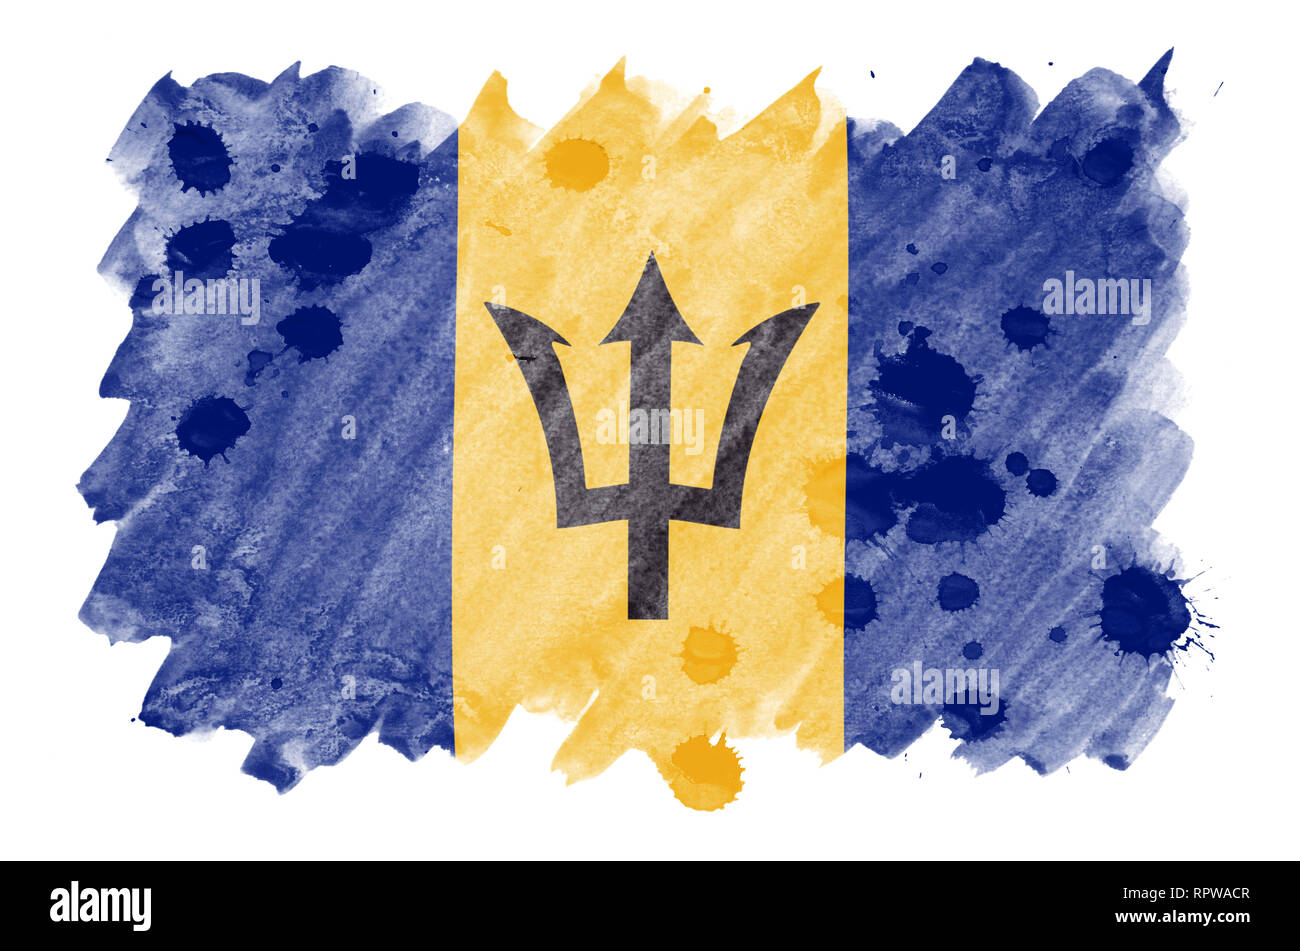 Barbados flag  is depicted in liquid watercolor style isolated on white background. Careless paint shading with image of national flag. Independence D - Stock Image